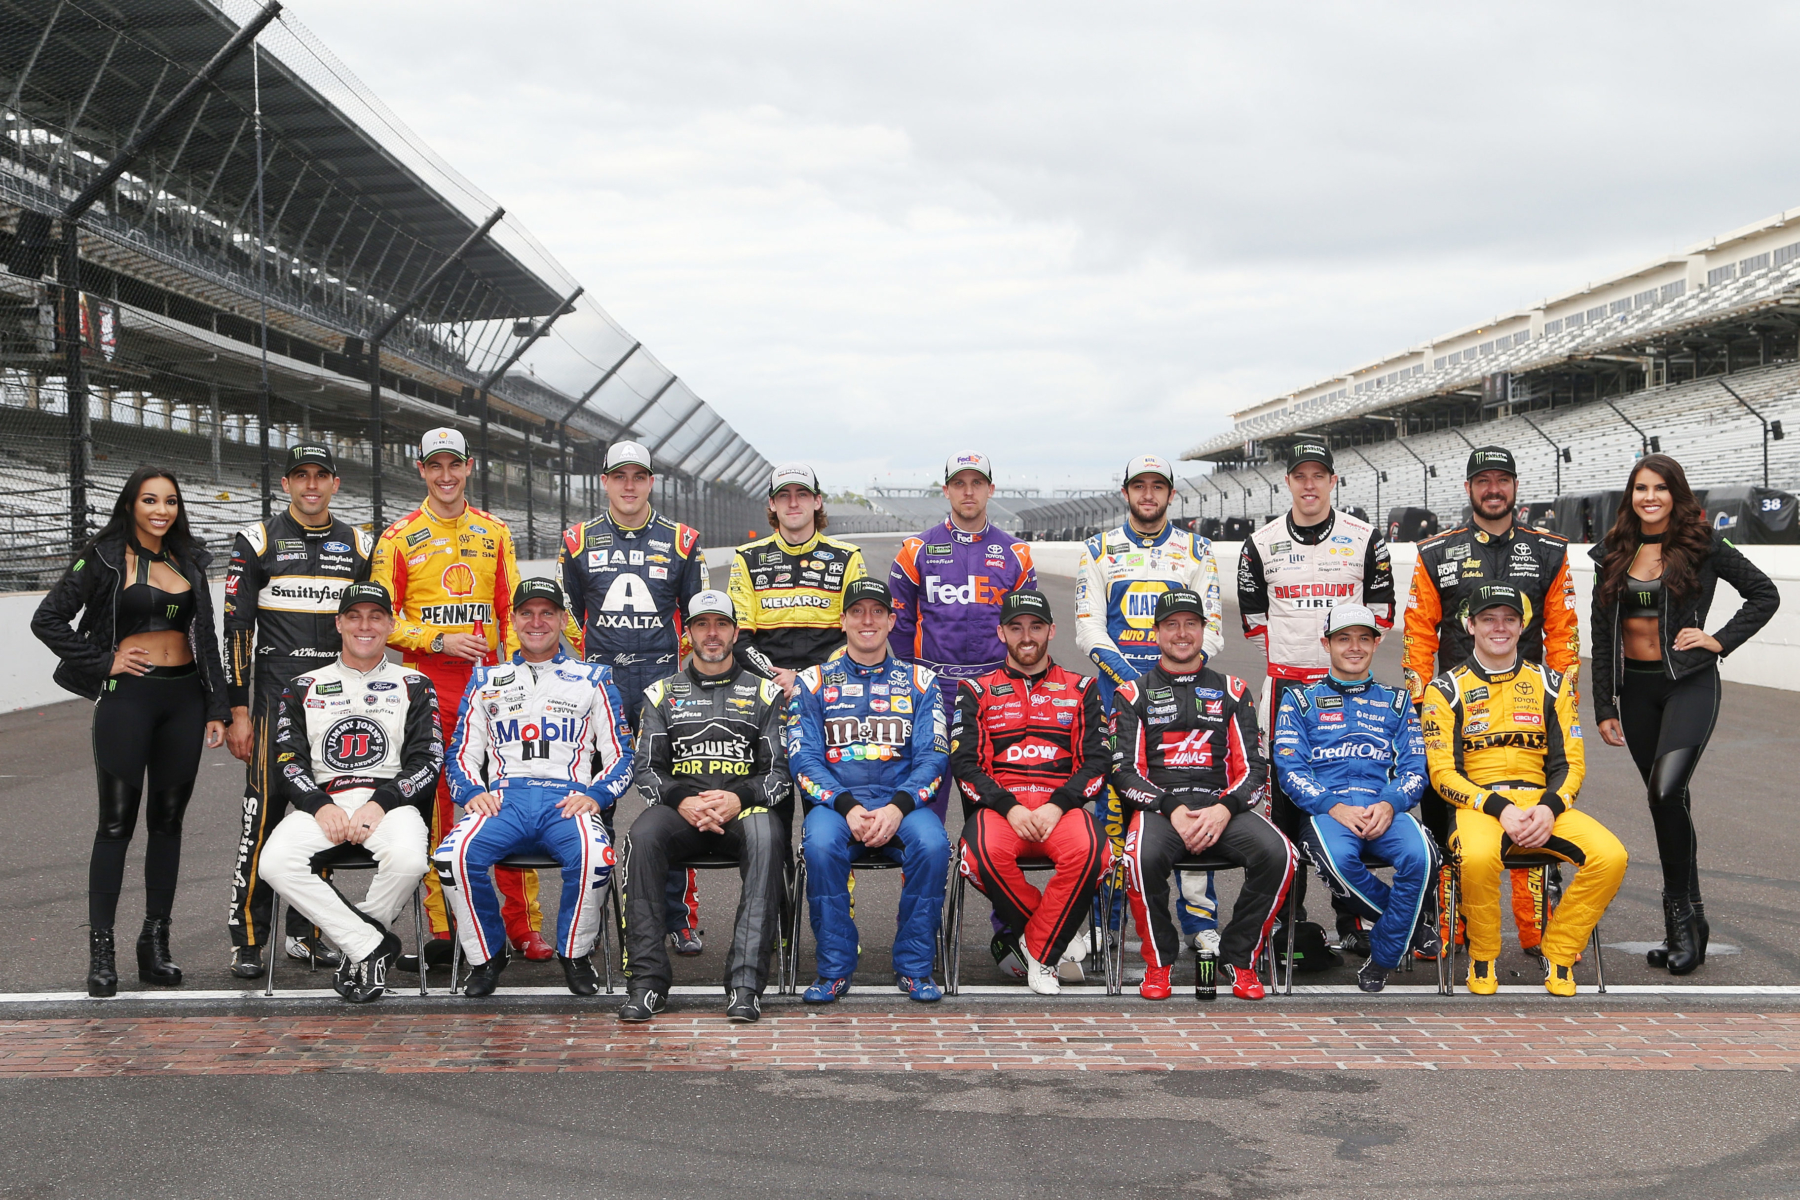 2018 NASCAR Cup Series playoff drivers